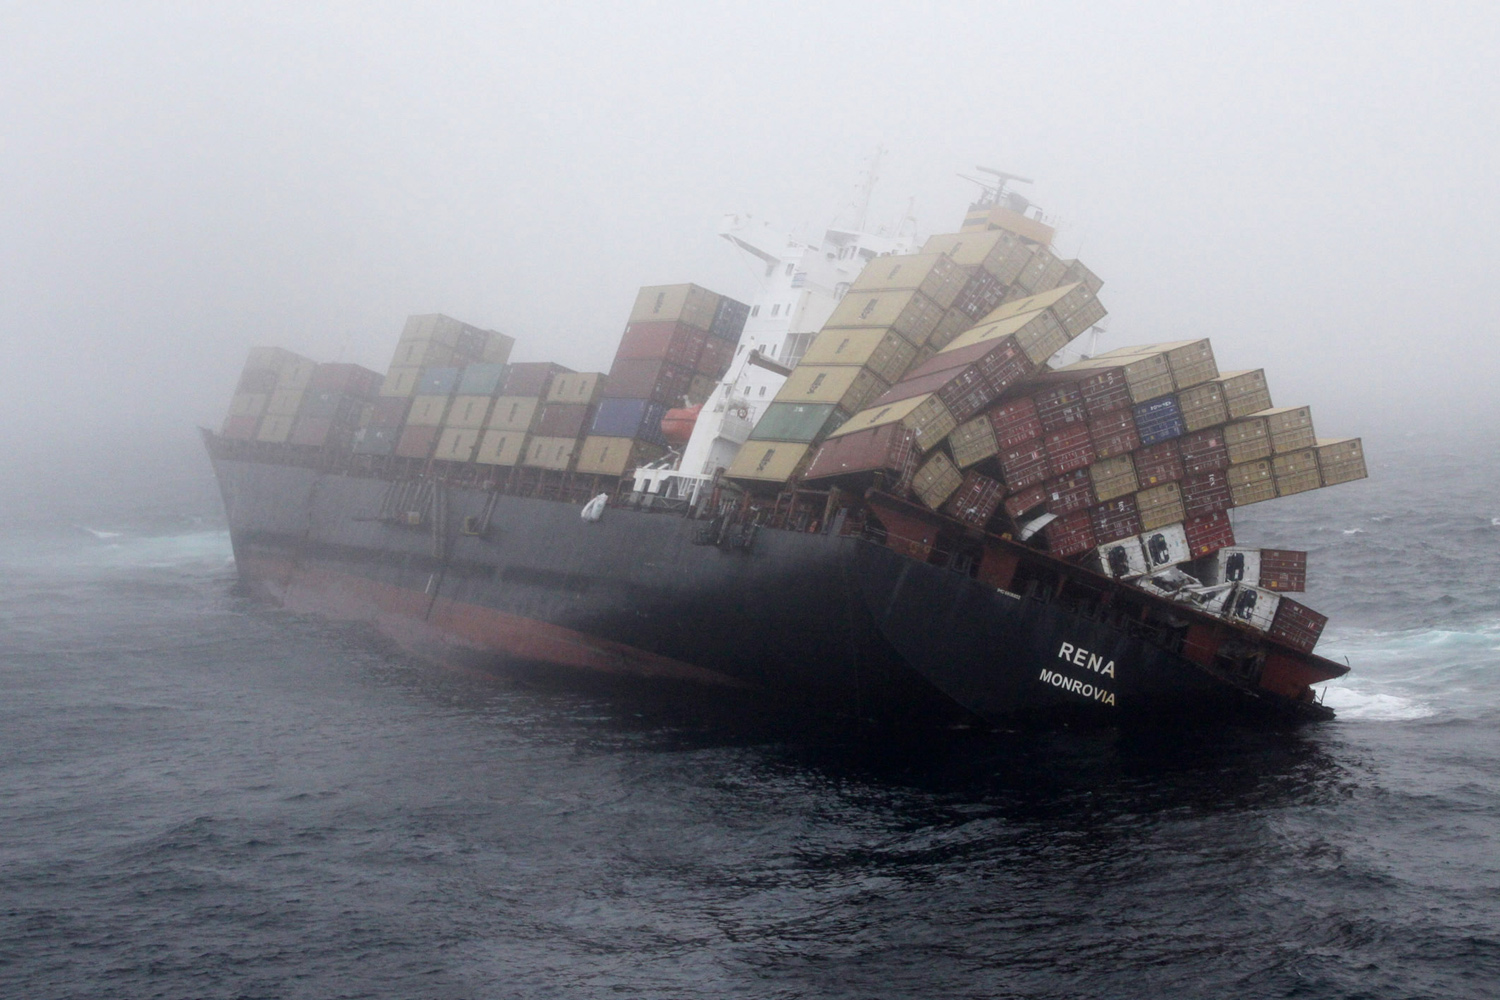 November 2, 2011. MV Rena is battered by strong seas as it is stuck on Astrolabe Reef, in Tauranga, New Zealand. The stricken vessel encountered a three meter swell, which led authorities to fear it may finally break up.